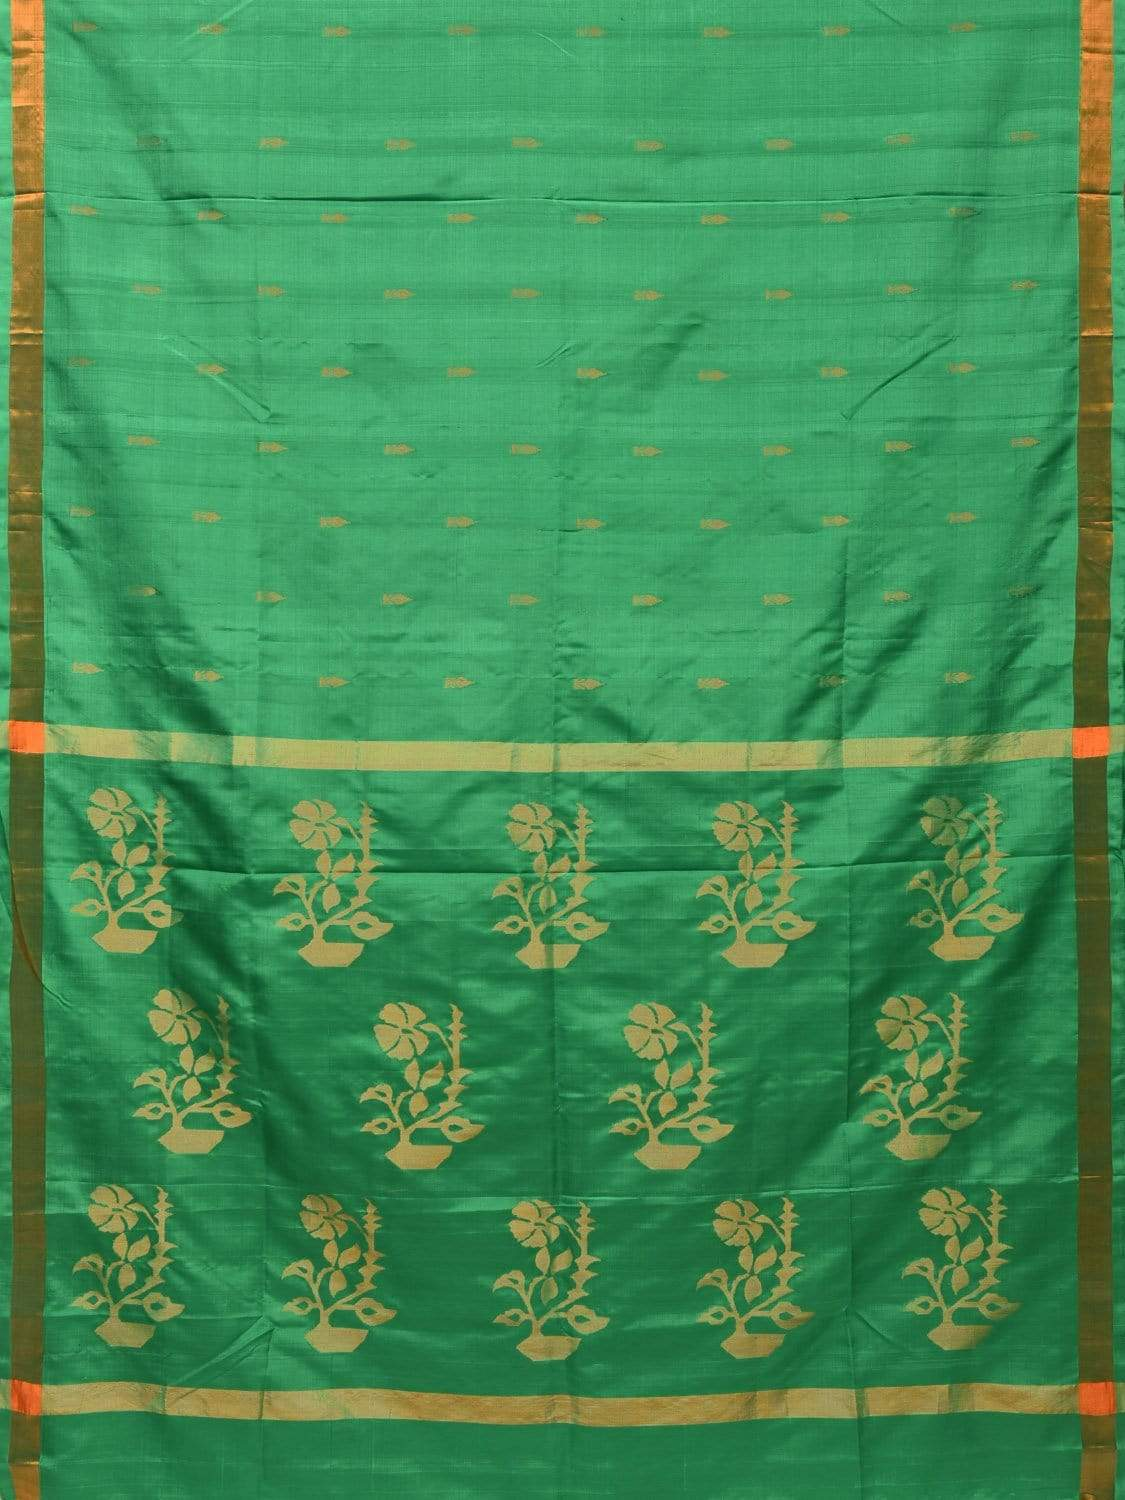 Green Uppada Silk Handloom Saree with Flower Pot Pallu Design u1633